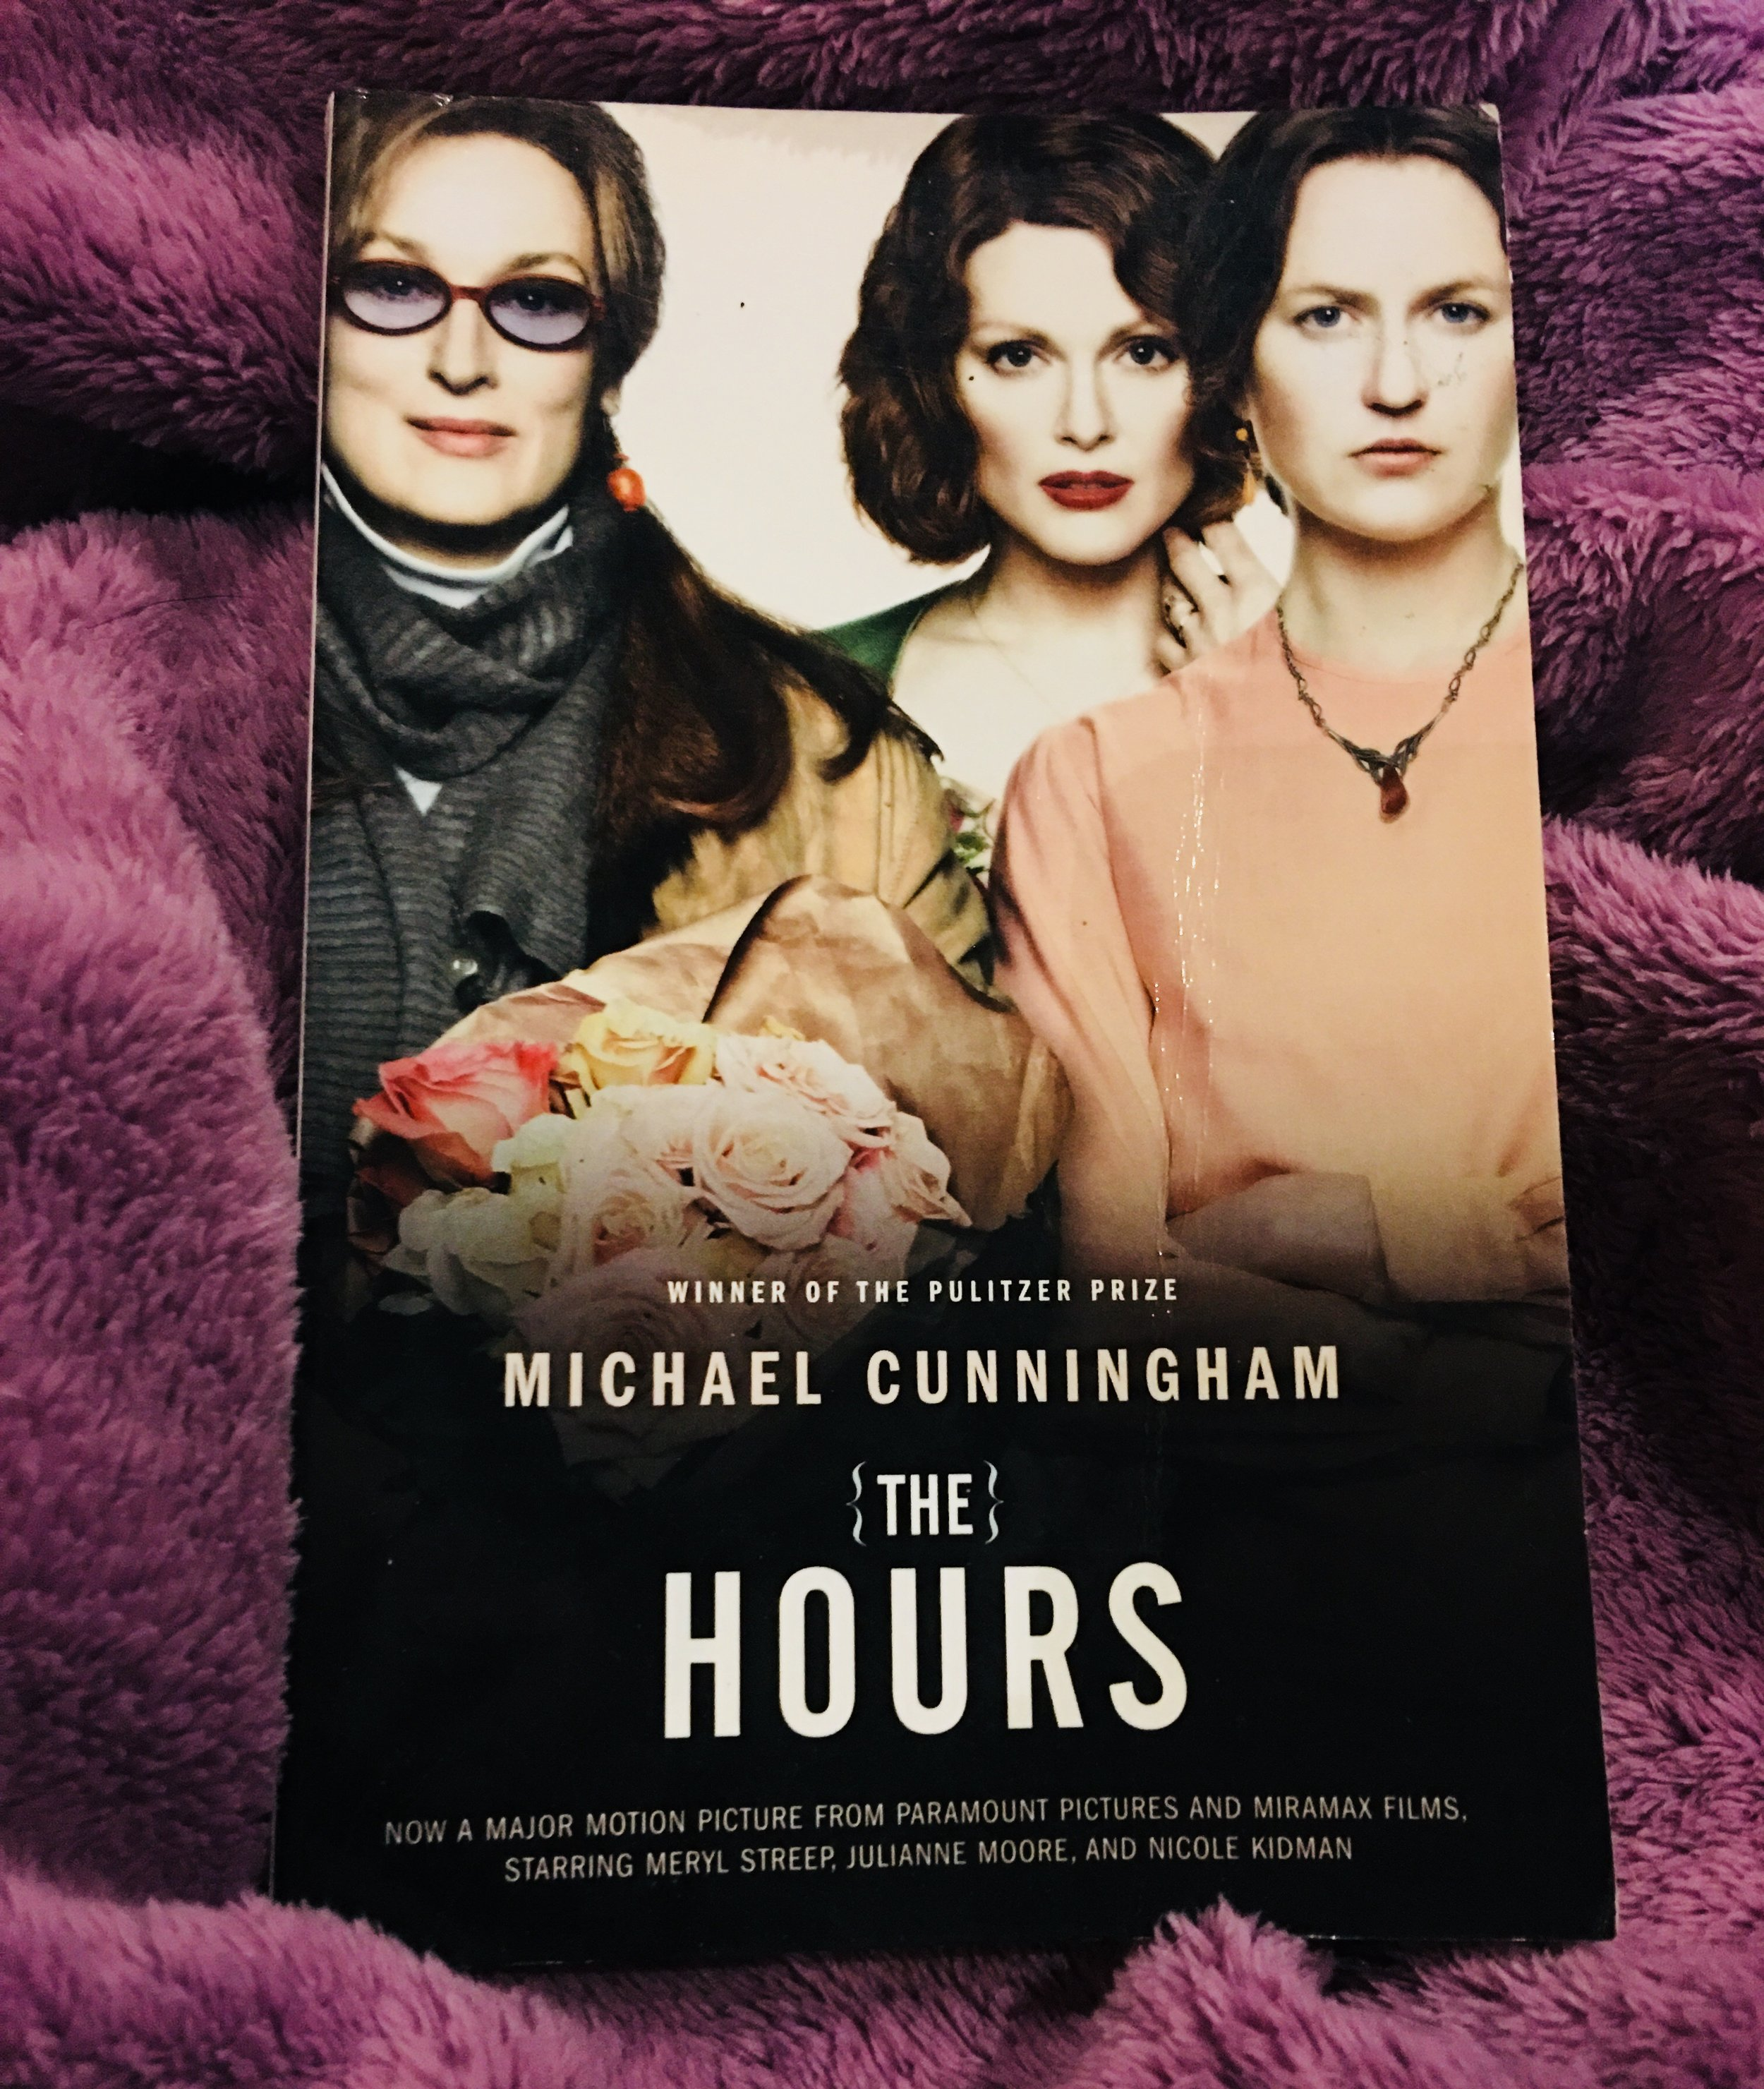 The Hours - By Michael CunninghamMy rating: 5 stars   Pages: 230What made me pick it up: I read Mrs Dalloway and wanted to read The Hours as it uses Mrs Dalloway as a heavy influenceFormat:Paperback   Source: My Bookshelf - Picked it up secondhand at Lifeline Bookfest one year2018 challenge/s: Goodreads 2018 Reading Challenge